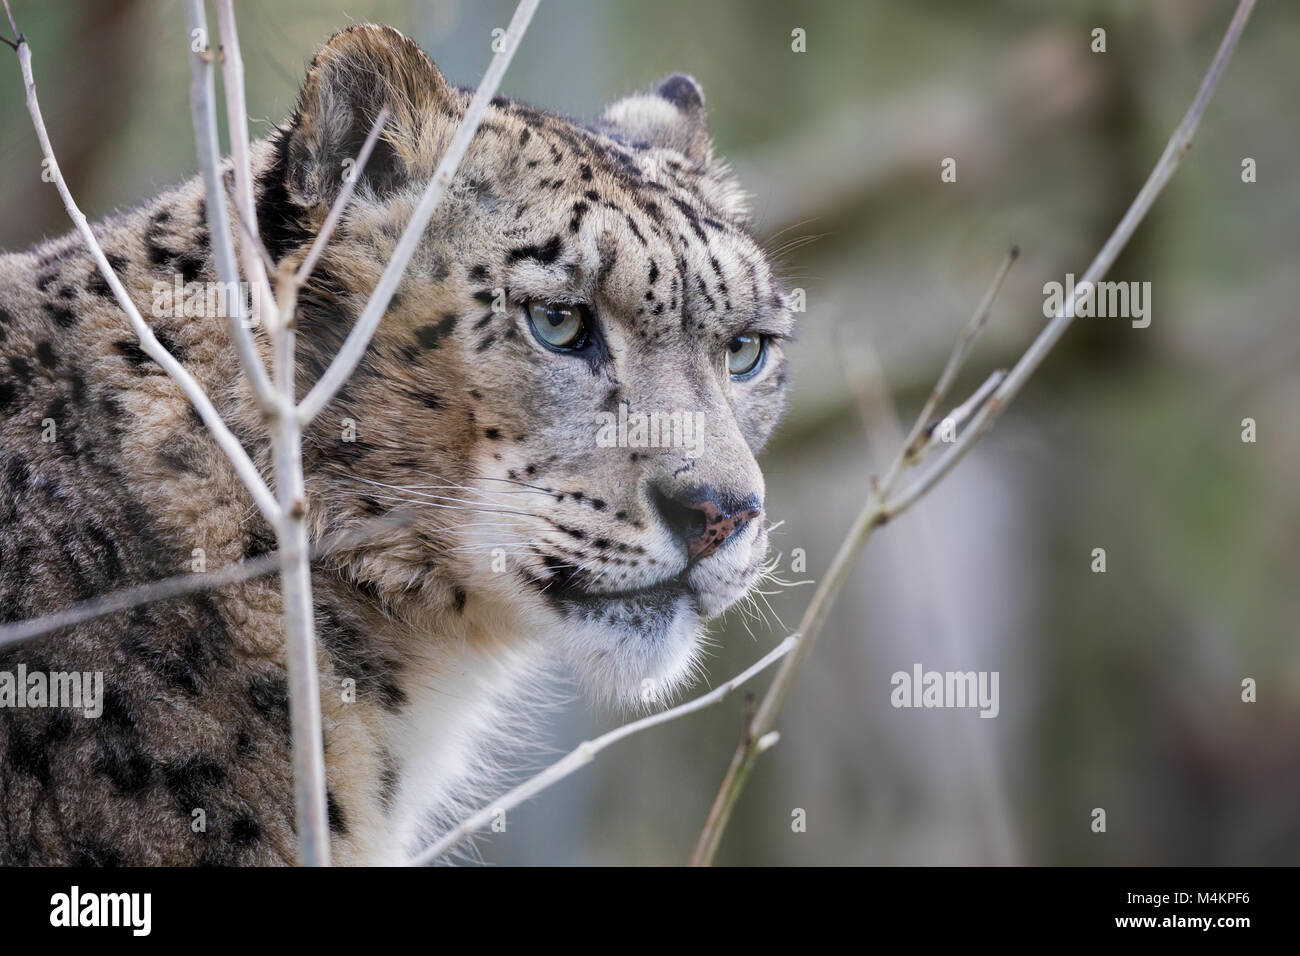 Watchful and alert adult snow leopard portrait with space for text - Stock Image